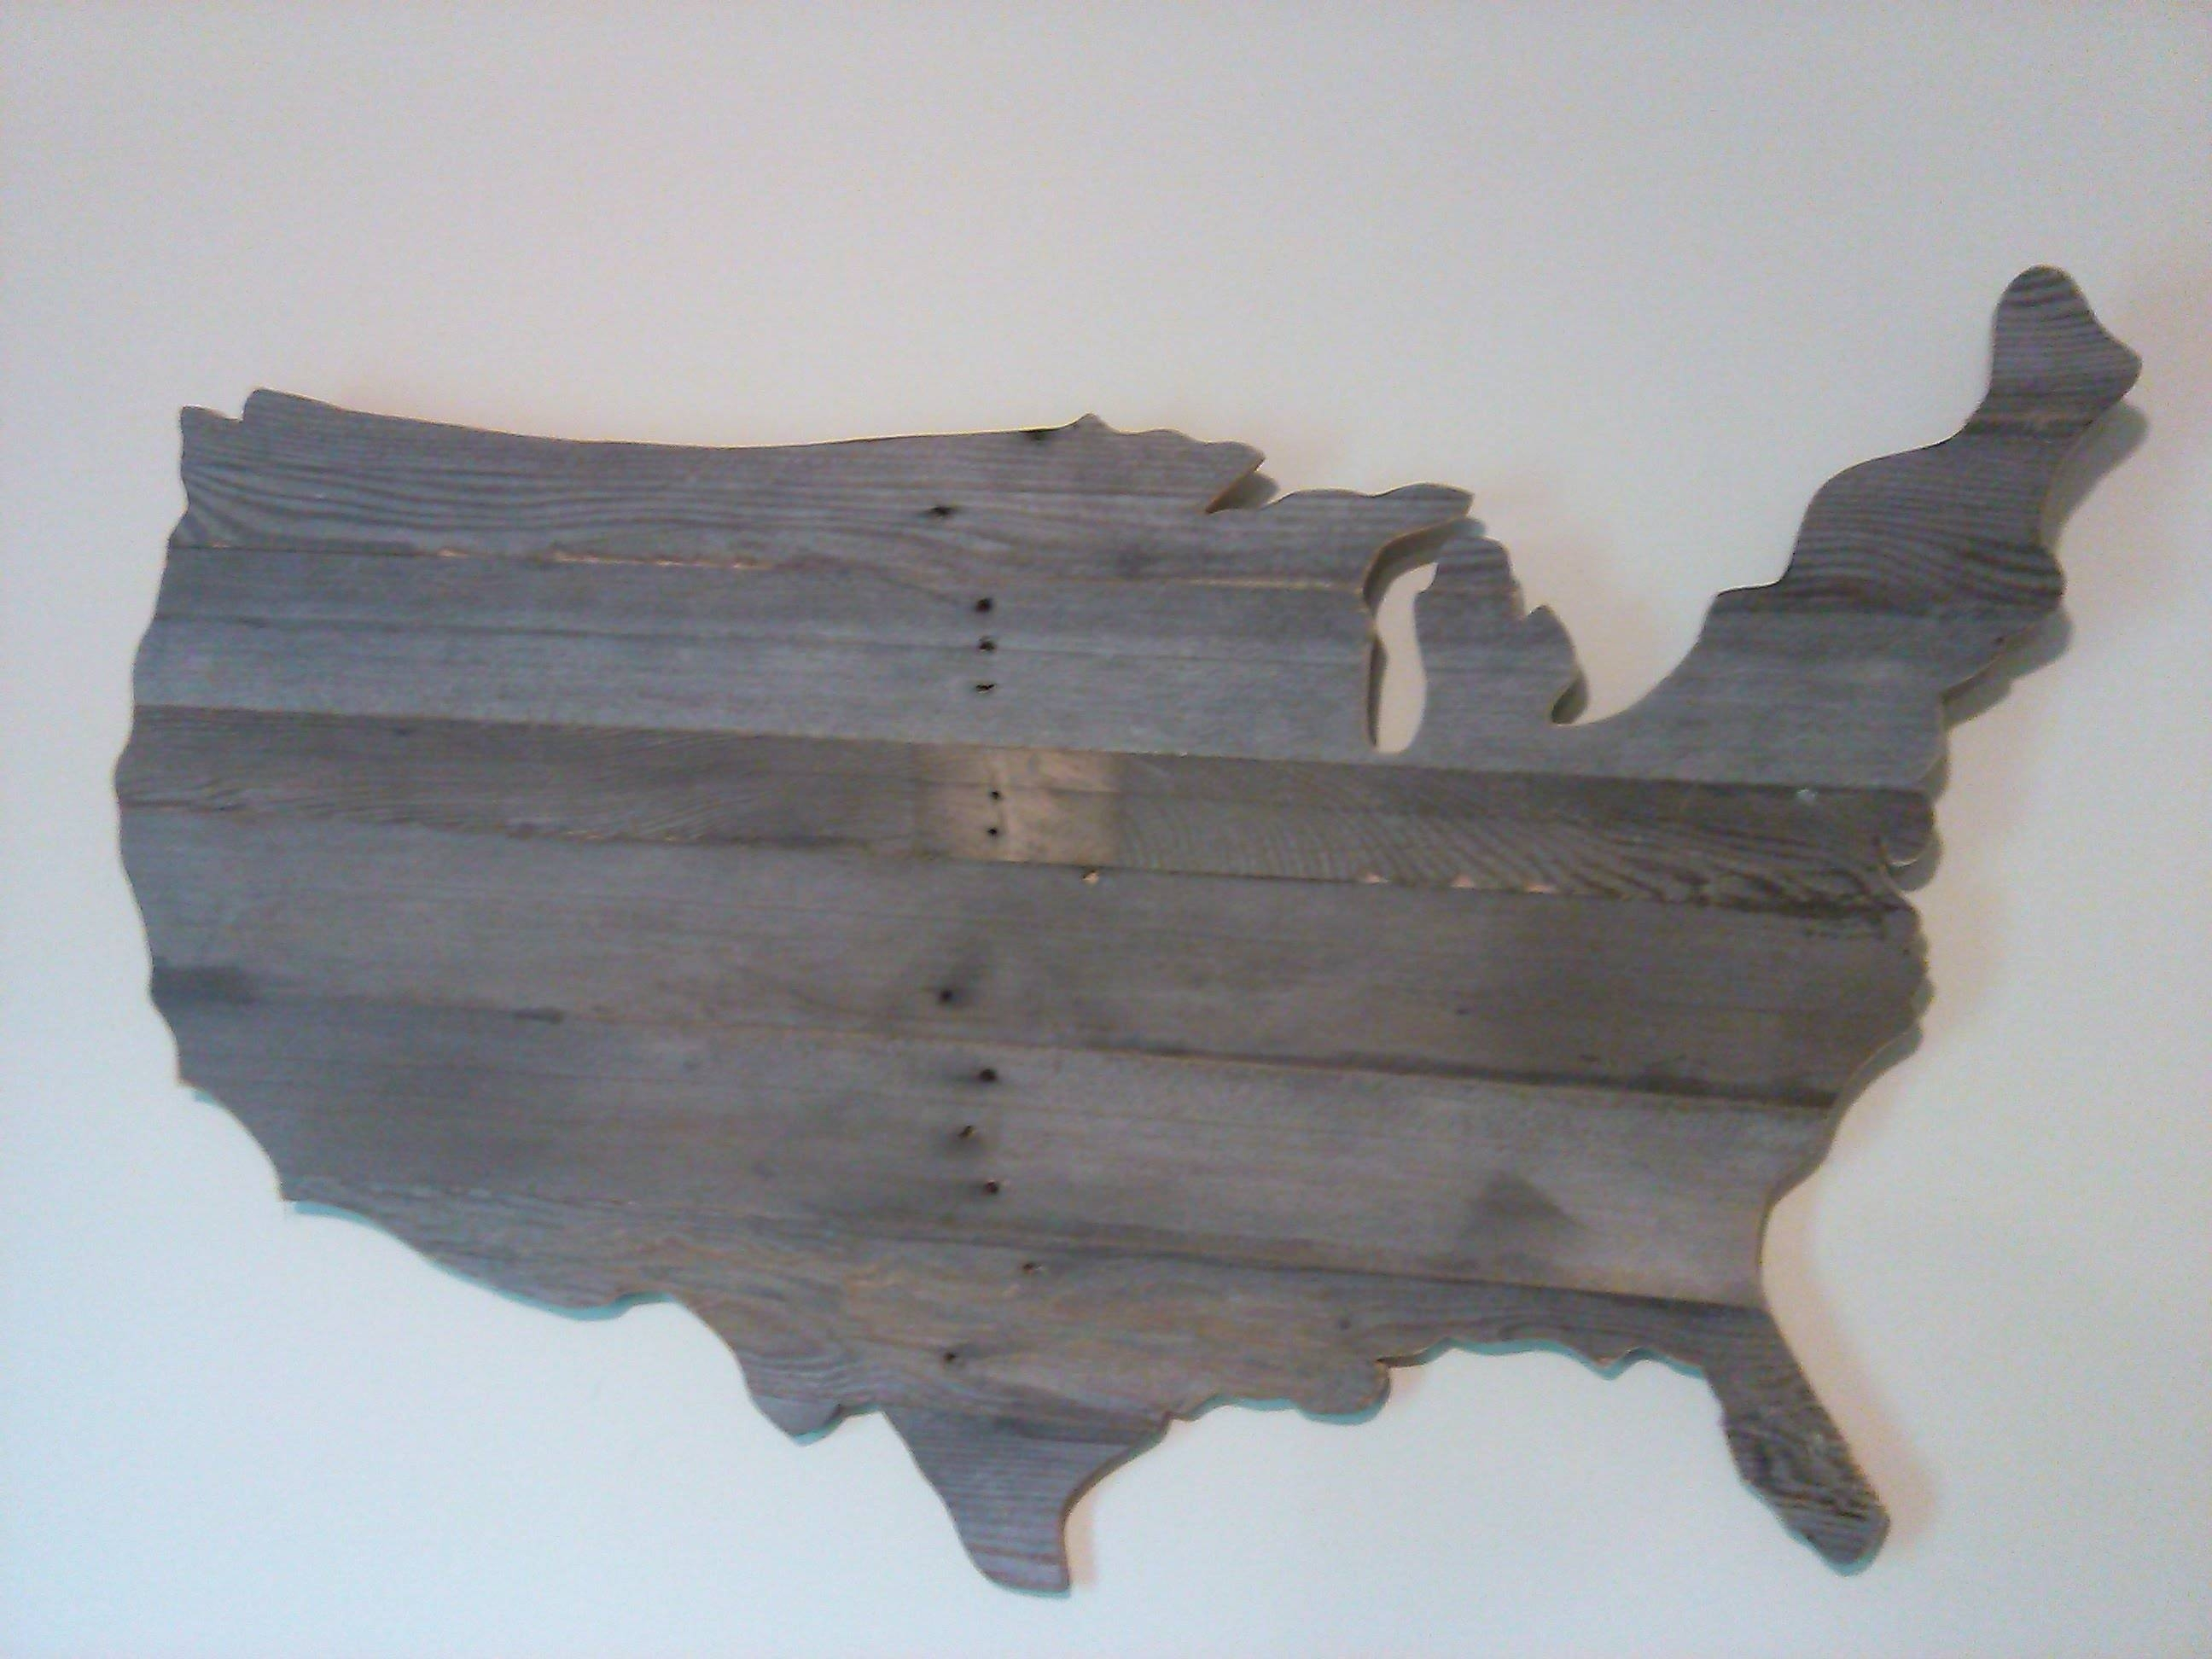 How To Make A Wooden Usa Map Wall Art Out Of Pallets – Youtube In Newest Wood Map Wall Art (Gallery 11 of 20)